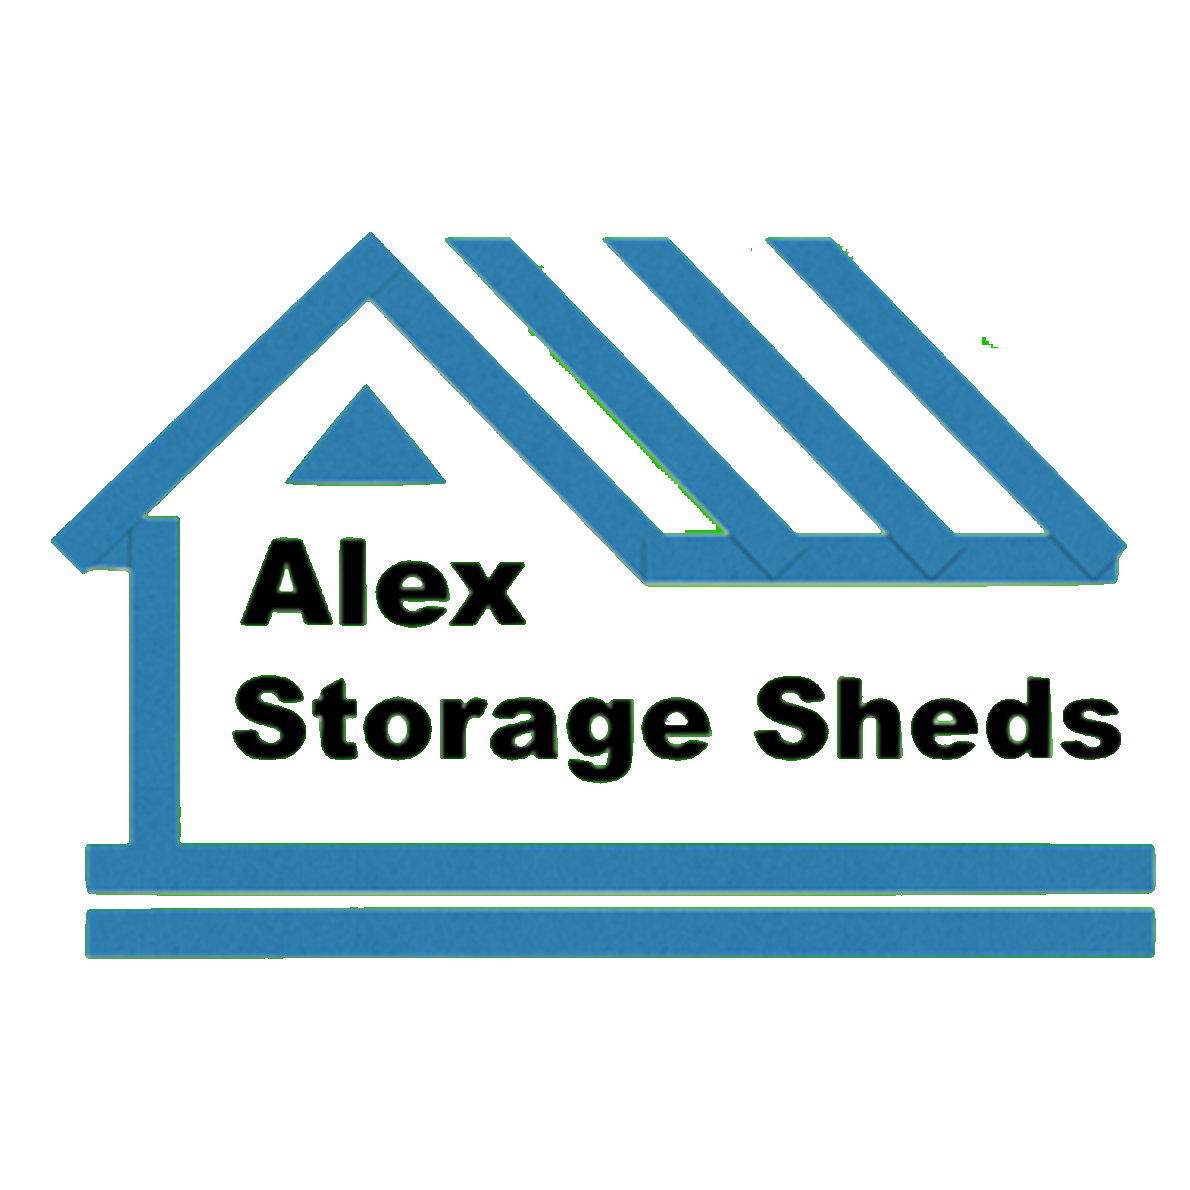 Alex Storage Sheds